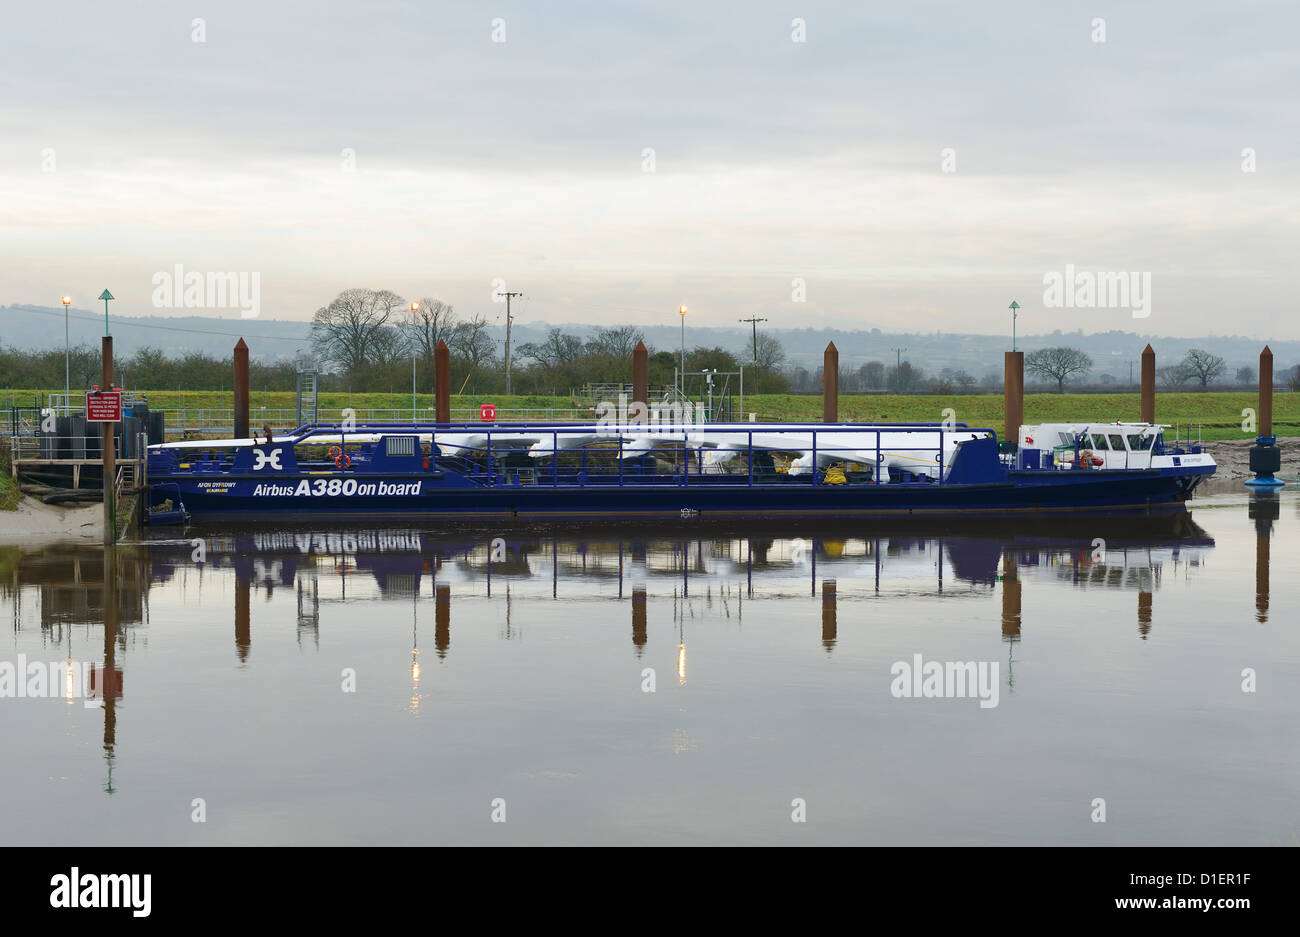 The Airbus A380 wing barge moored near the Broughton factory - Stock Image